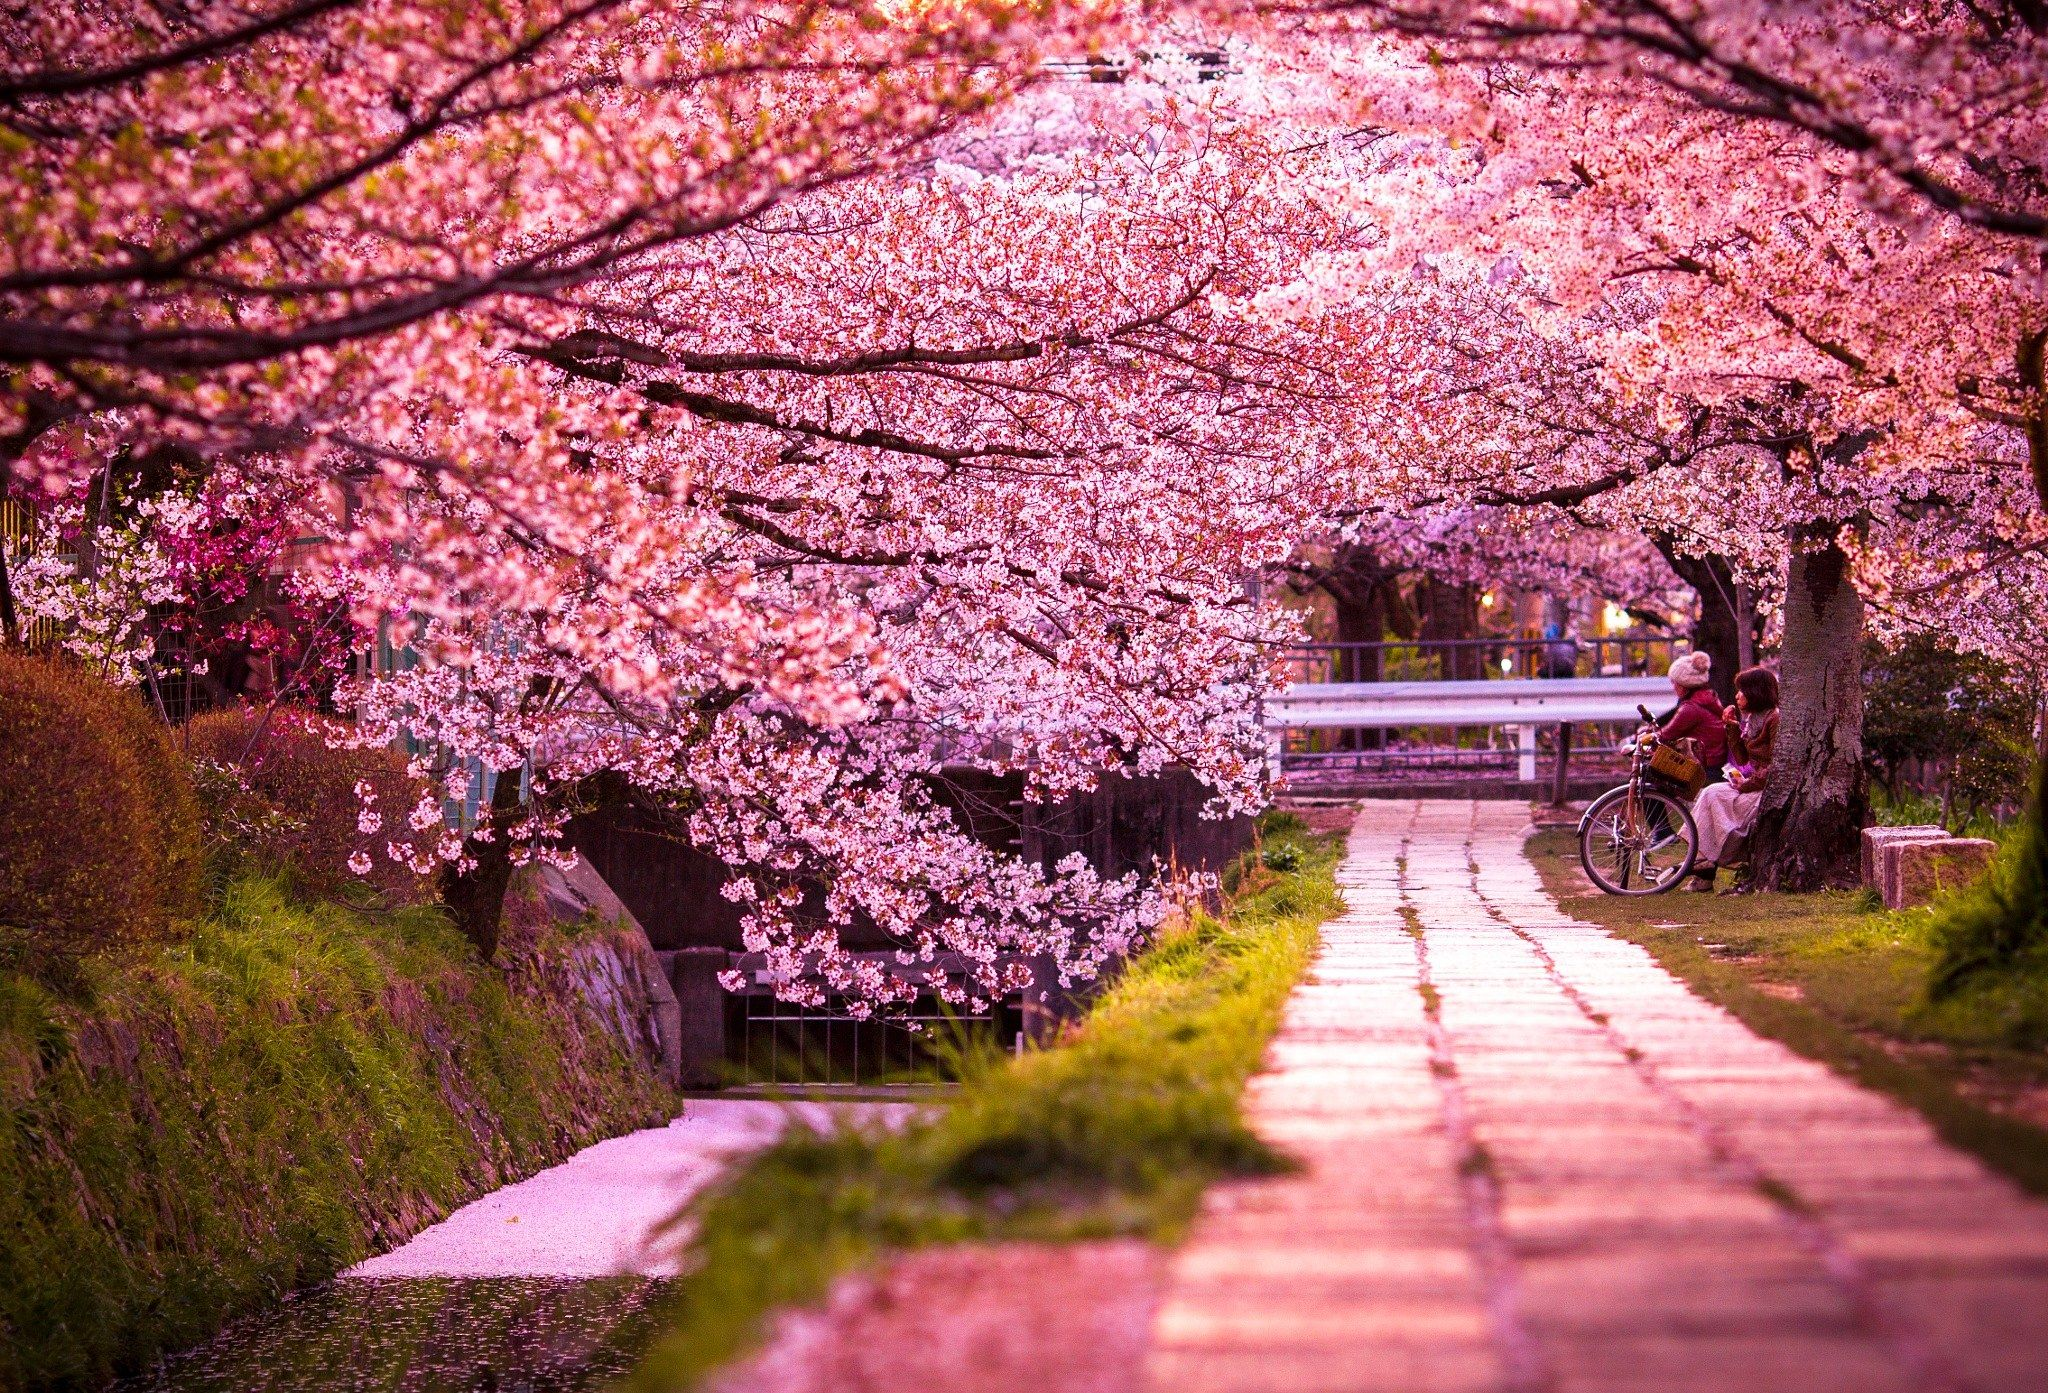 Cherry Blossom Are On Huge Rate In Japan Cherry Blossom Japan Nature Photography Cherry Blossom Wallpaper